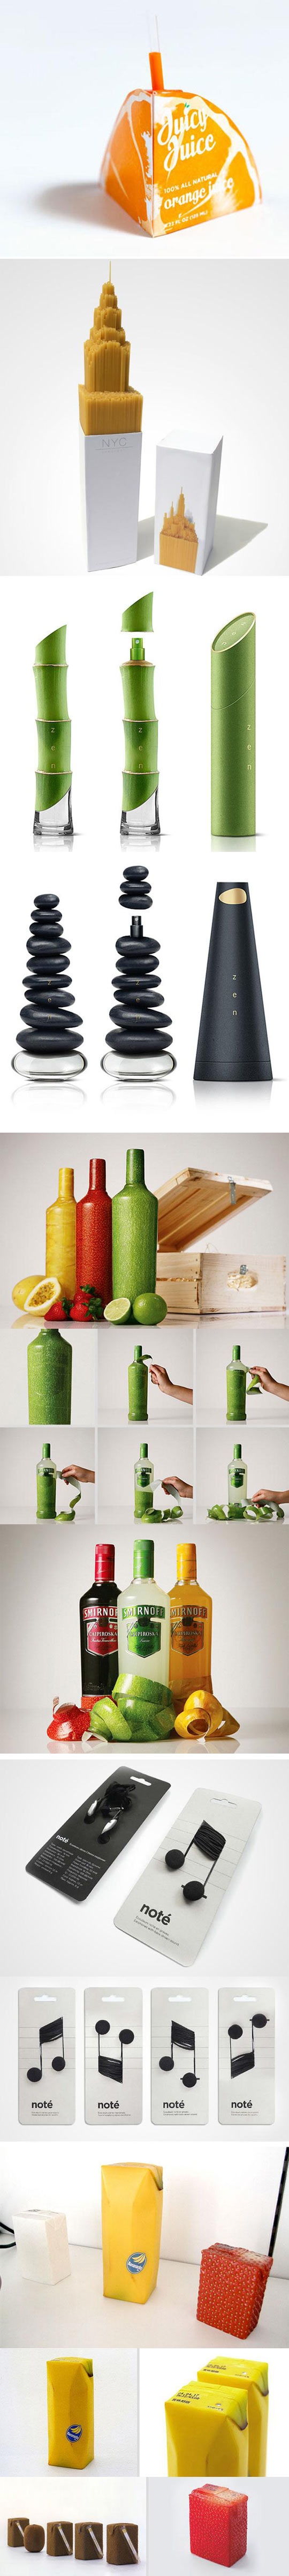 cool-packaging-products-design-creative-juice